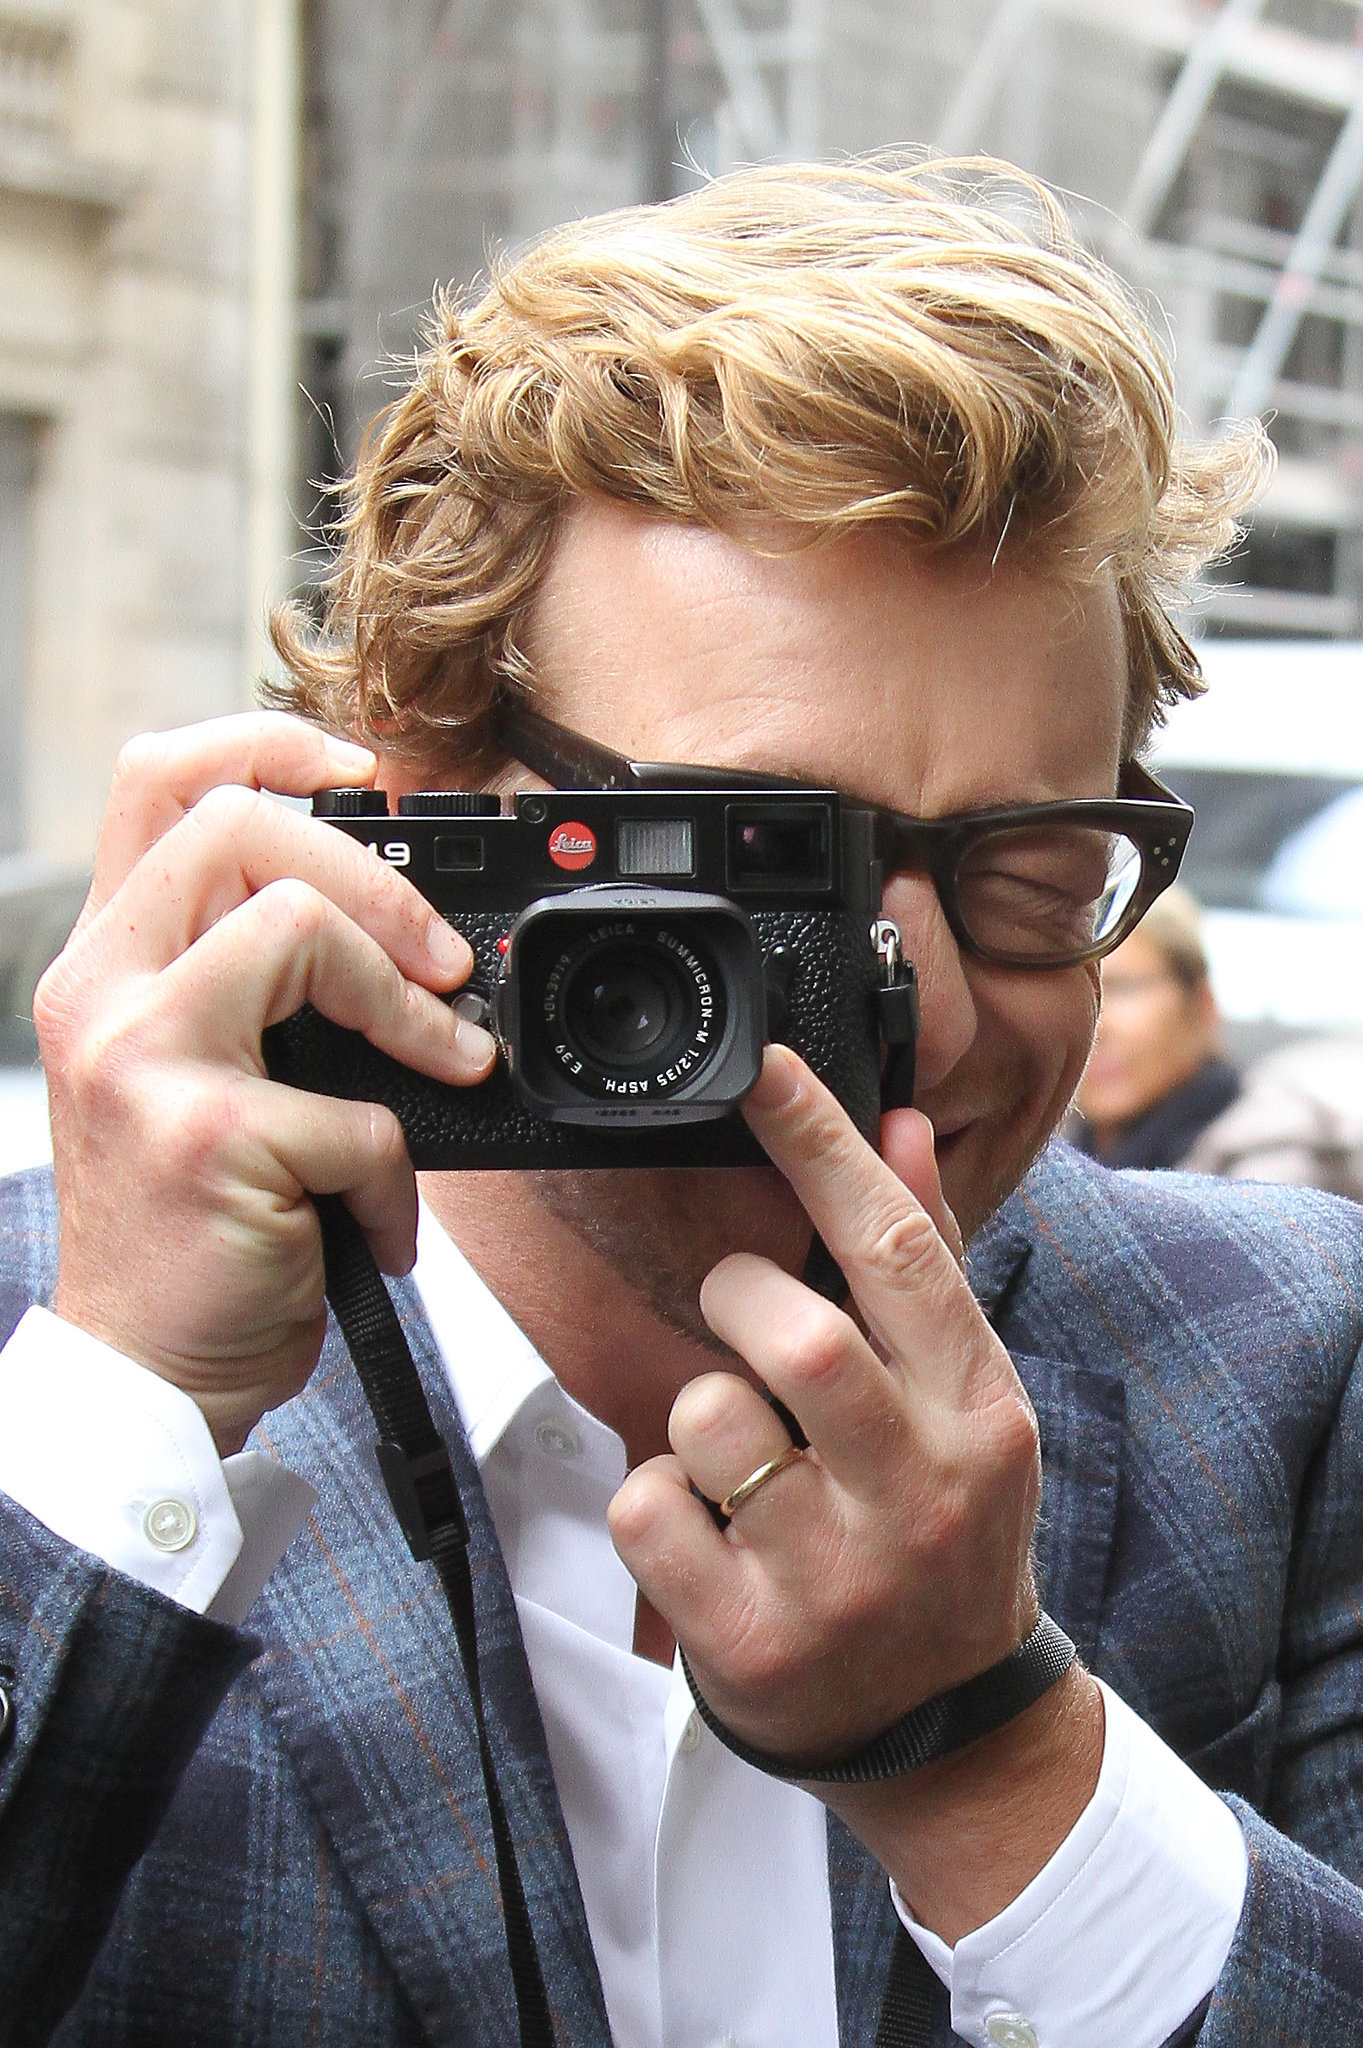 Here he is taking your photo after telling you how gorgeous you look today.